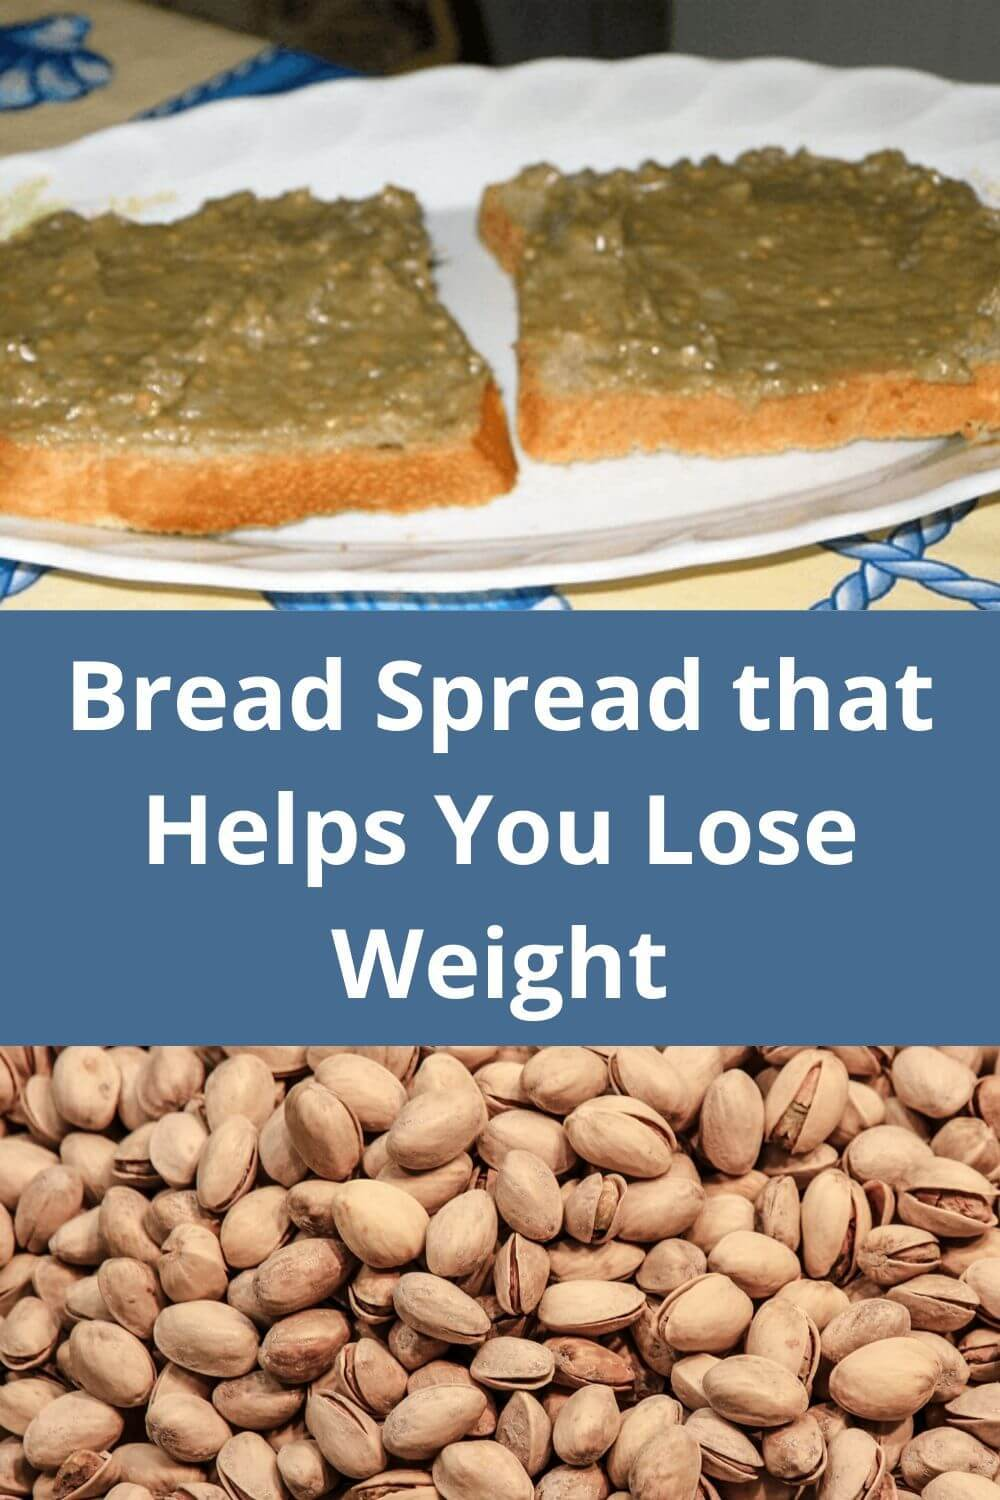 Bread spread tht helps you lose weight